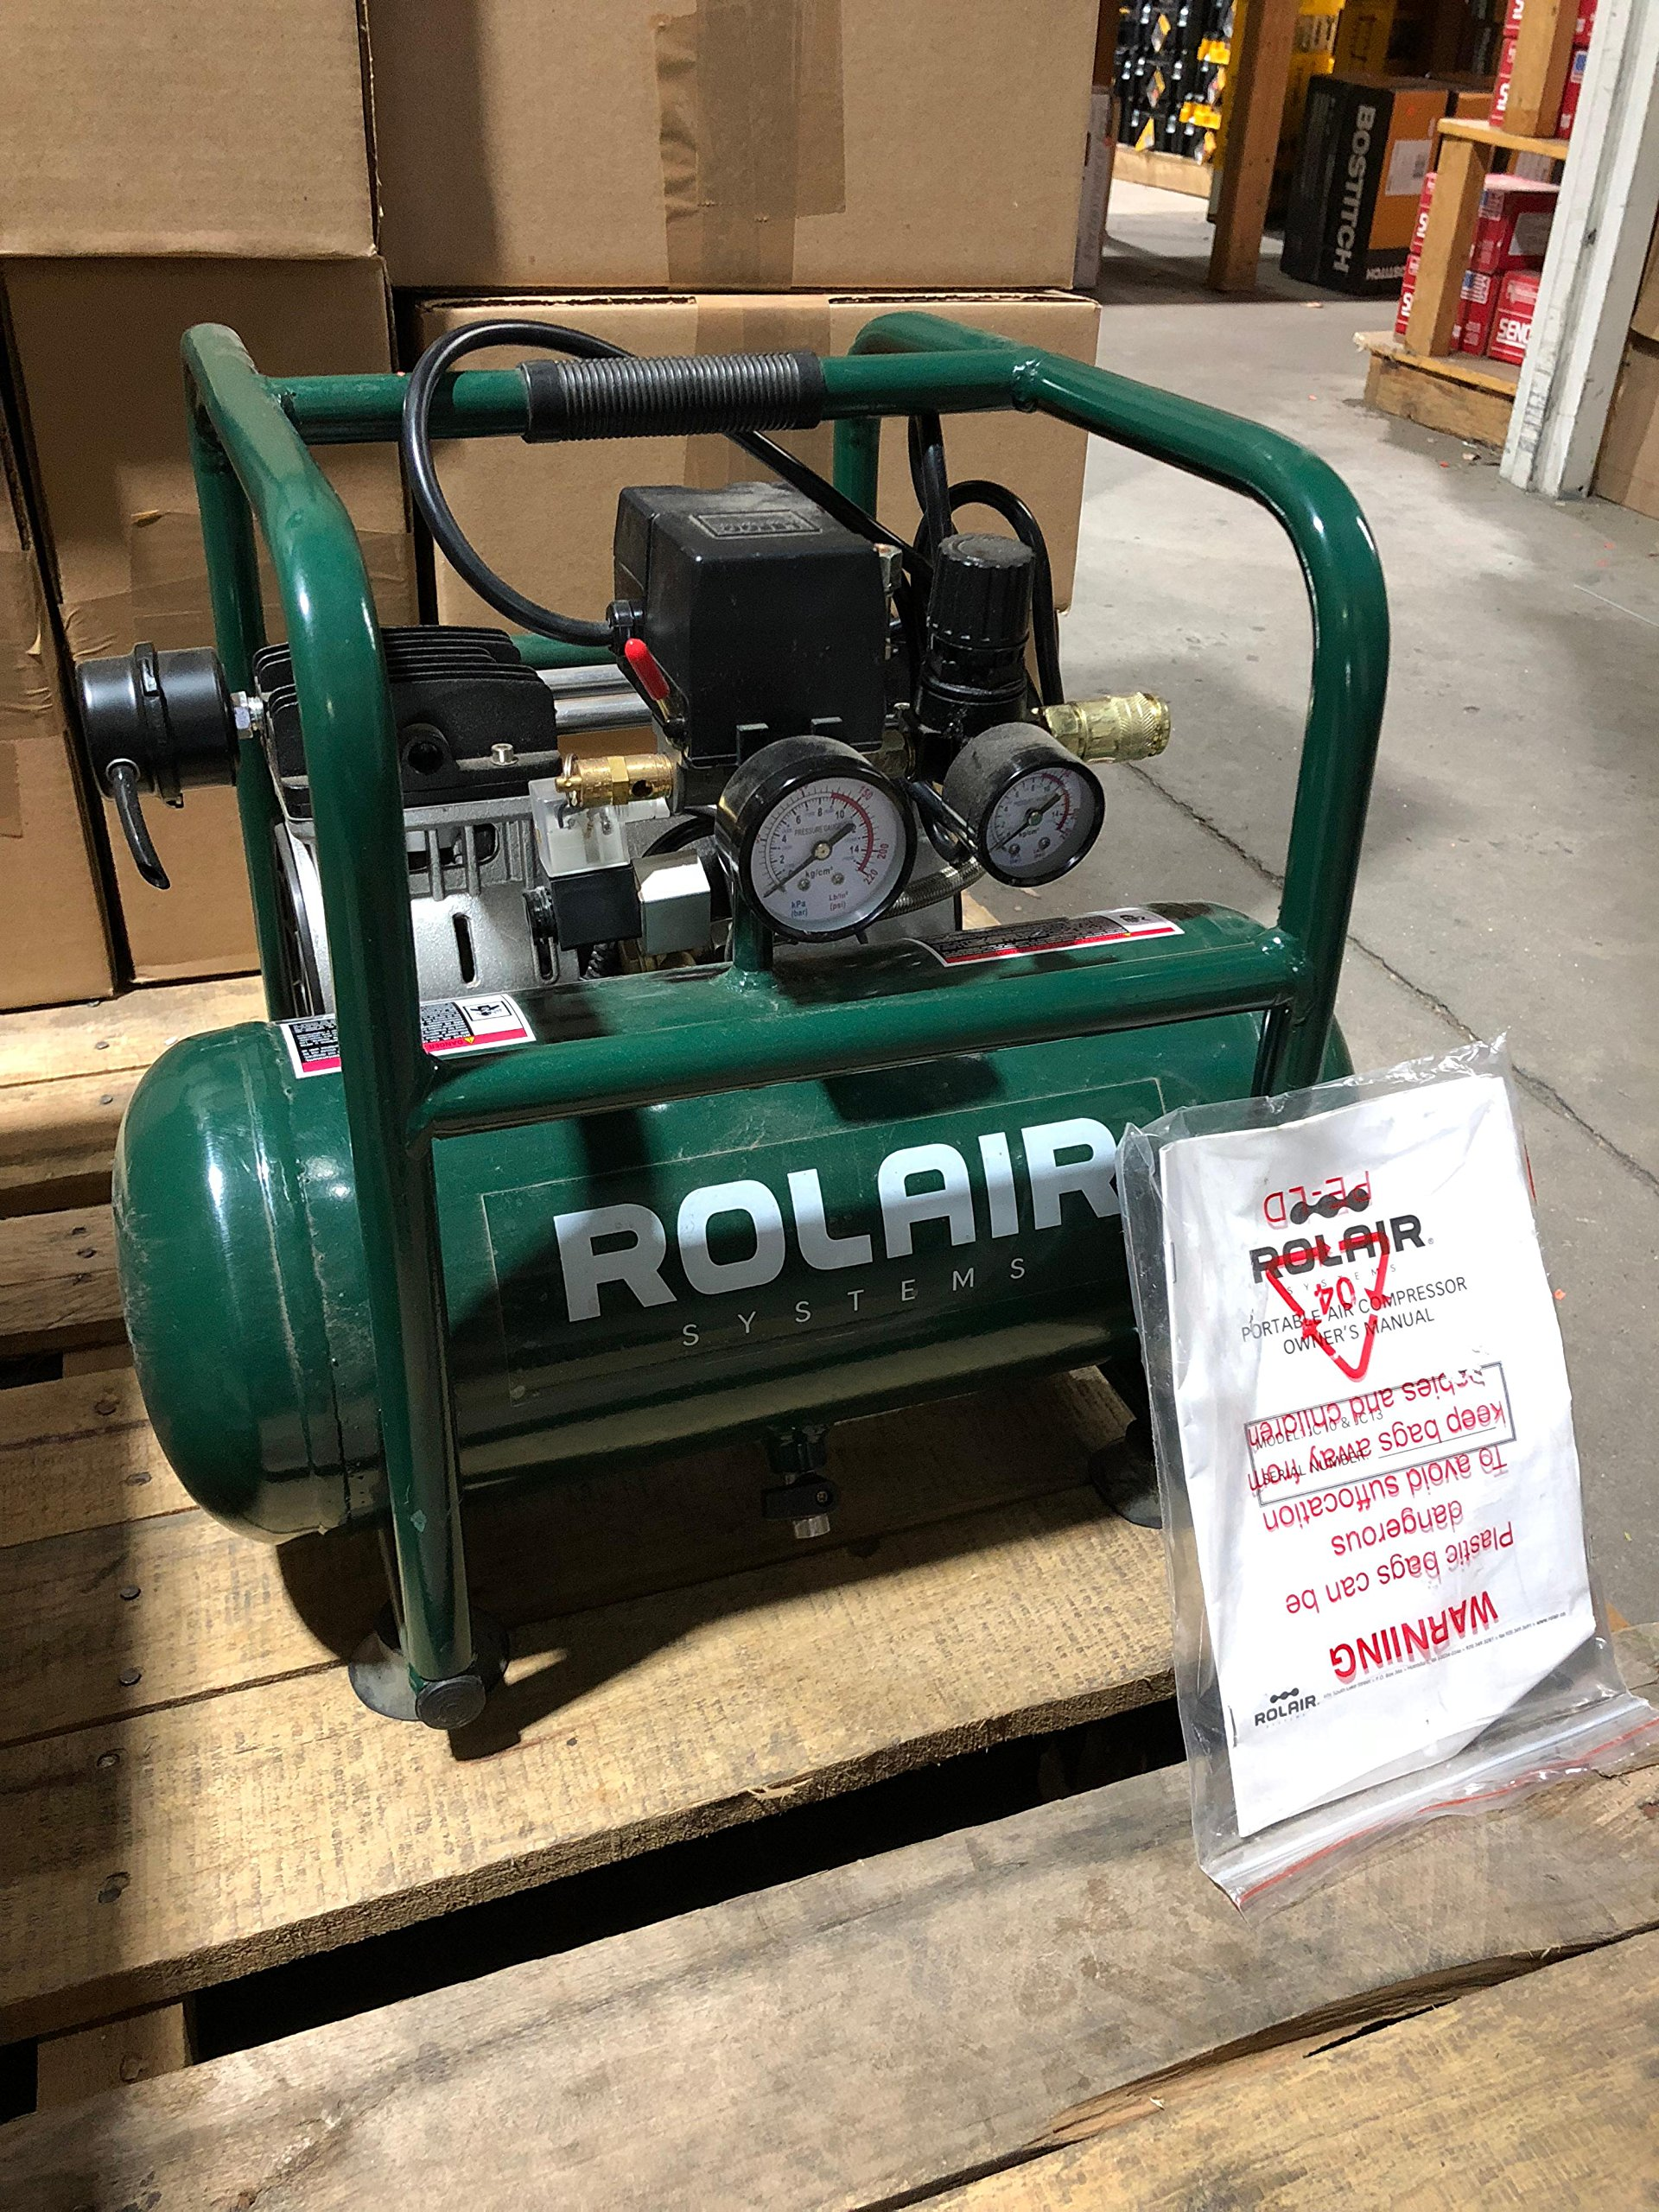 Rolair JC10 Plus 1 HP Oil-Less Compressor by Rolair